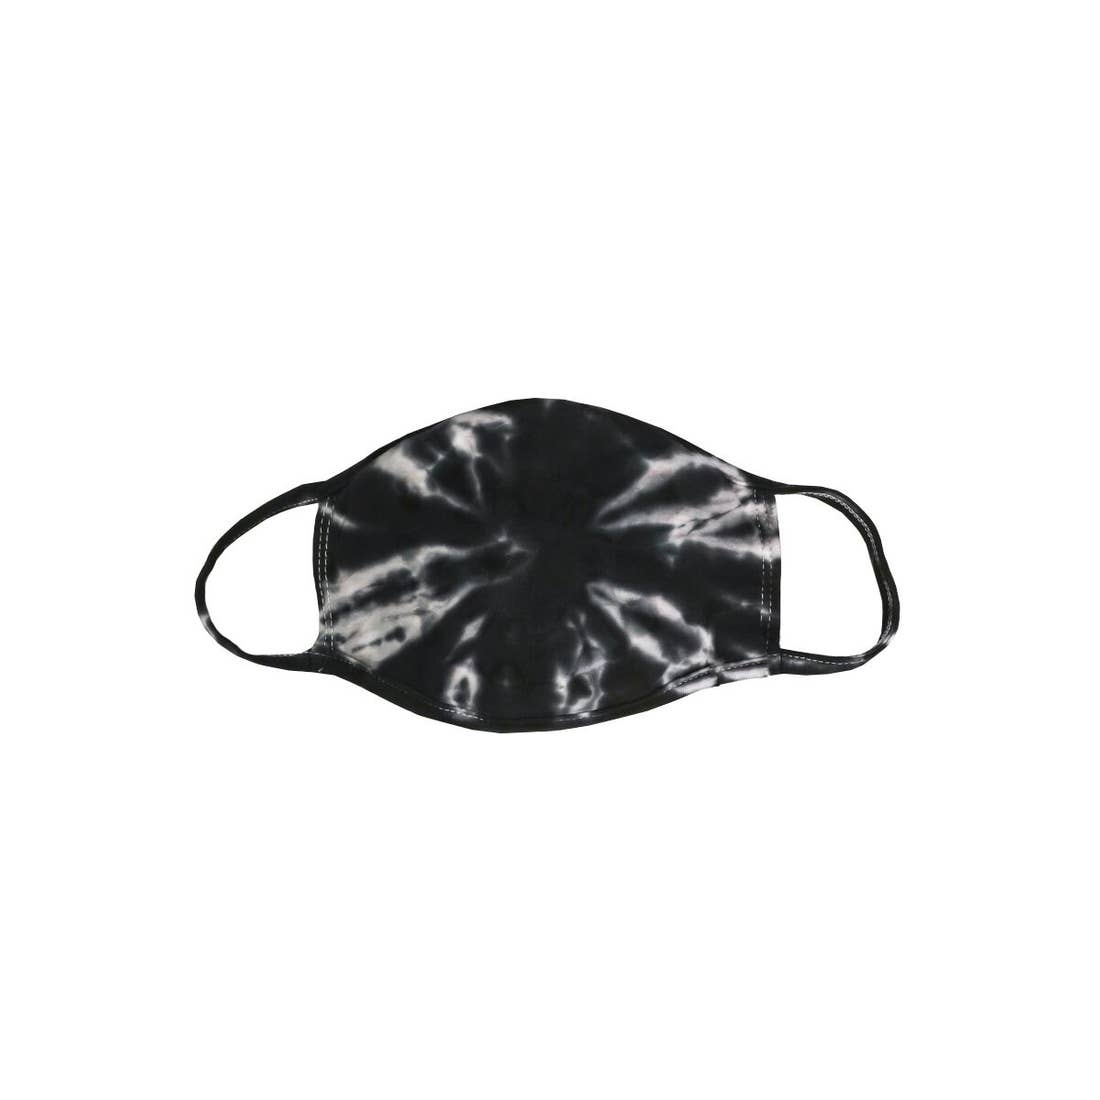 Black Tie Dye Mask - Adult